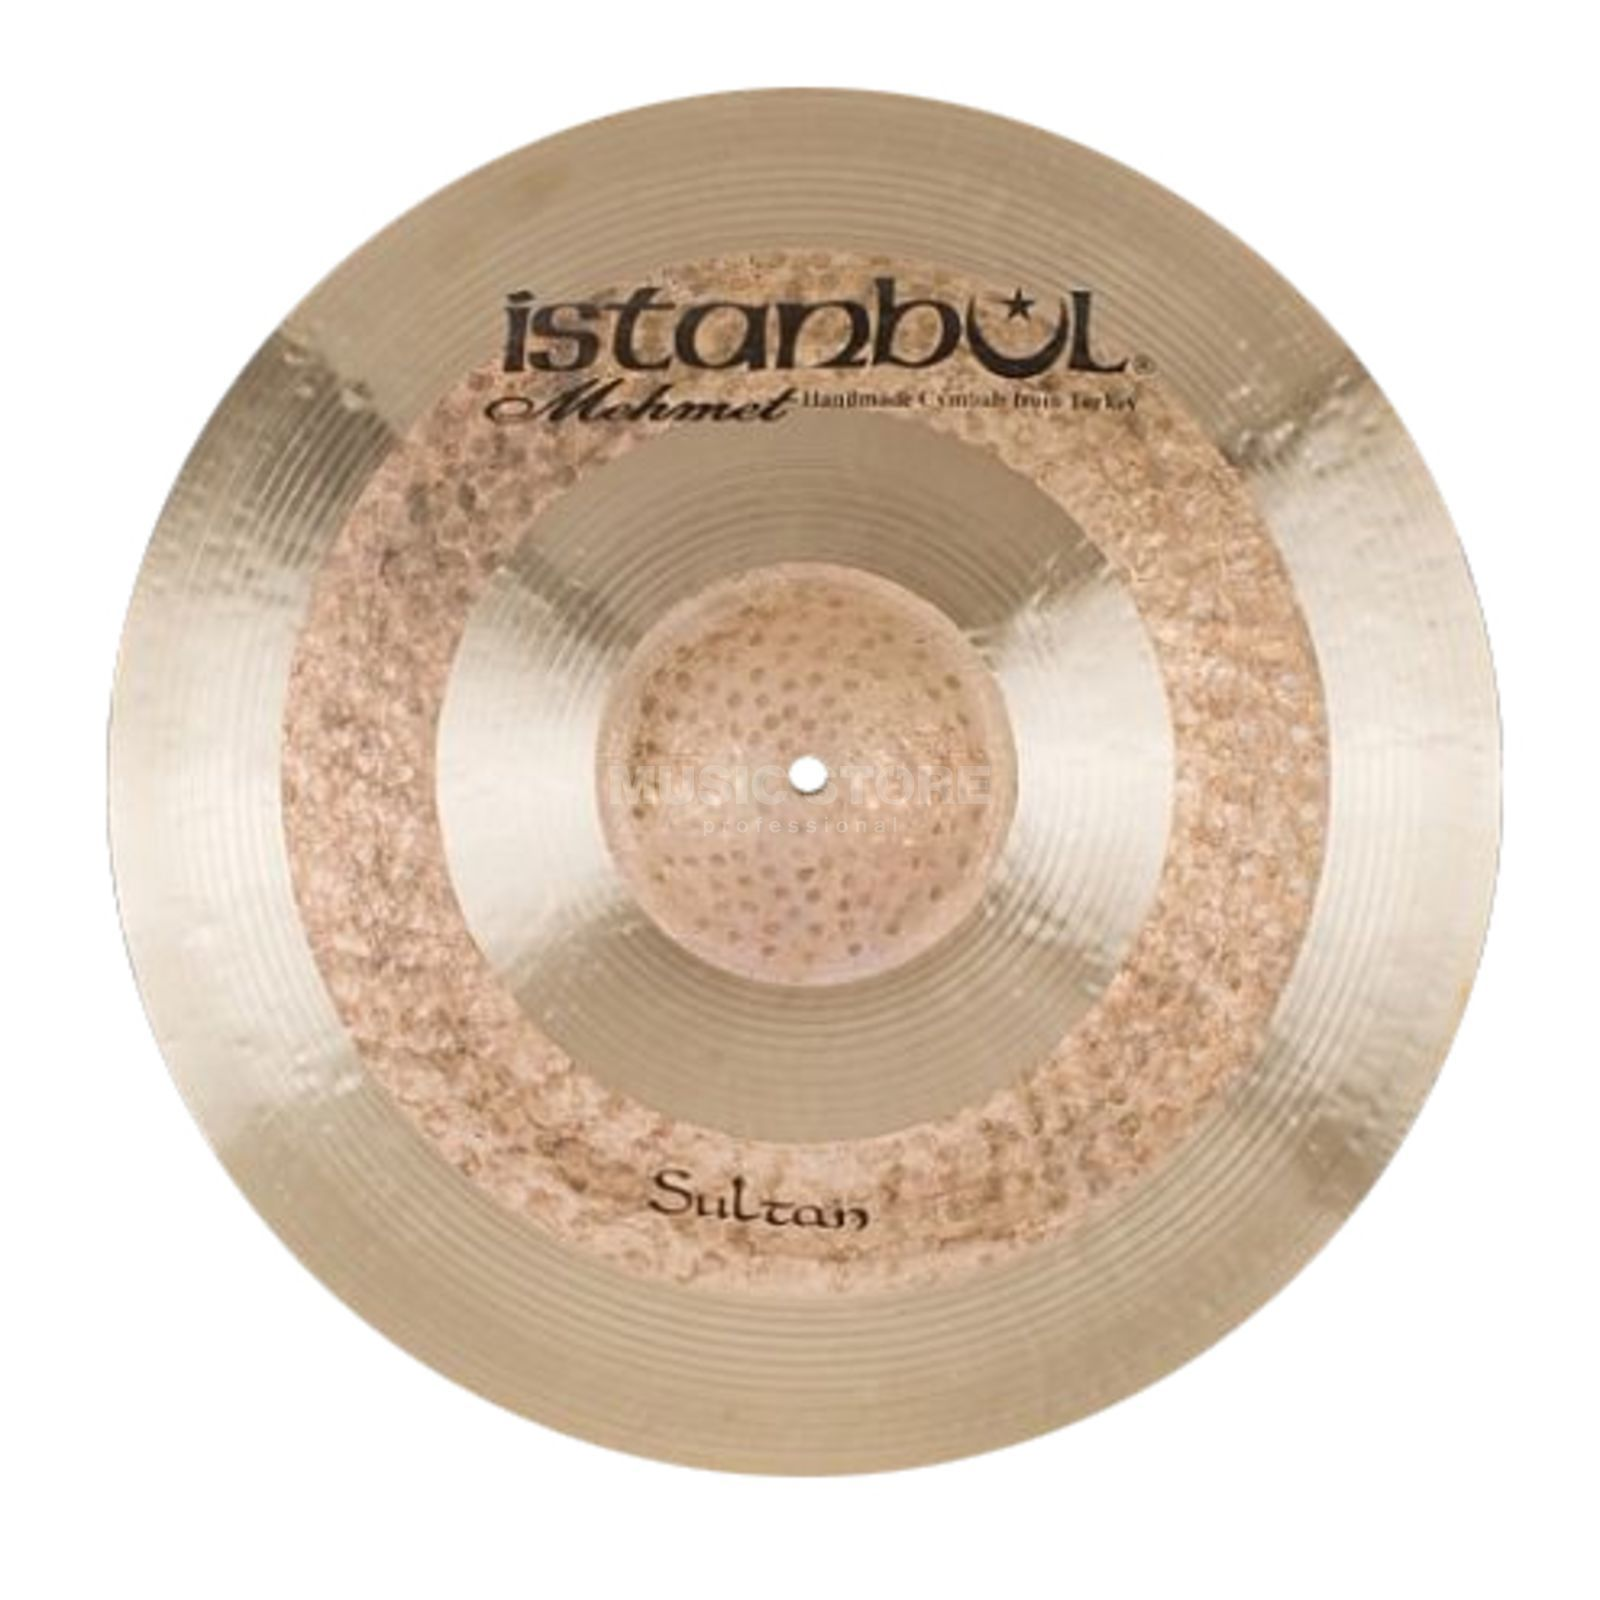 "Istanbul Sultan Thin Crash 15"", CTS15 Productafbeelding"